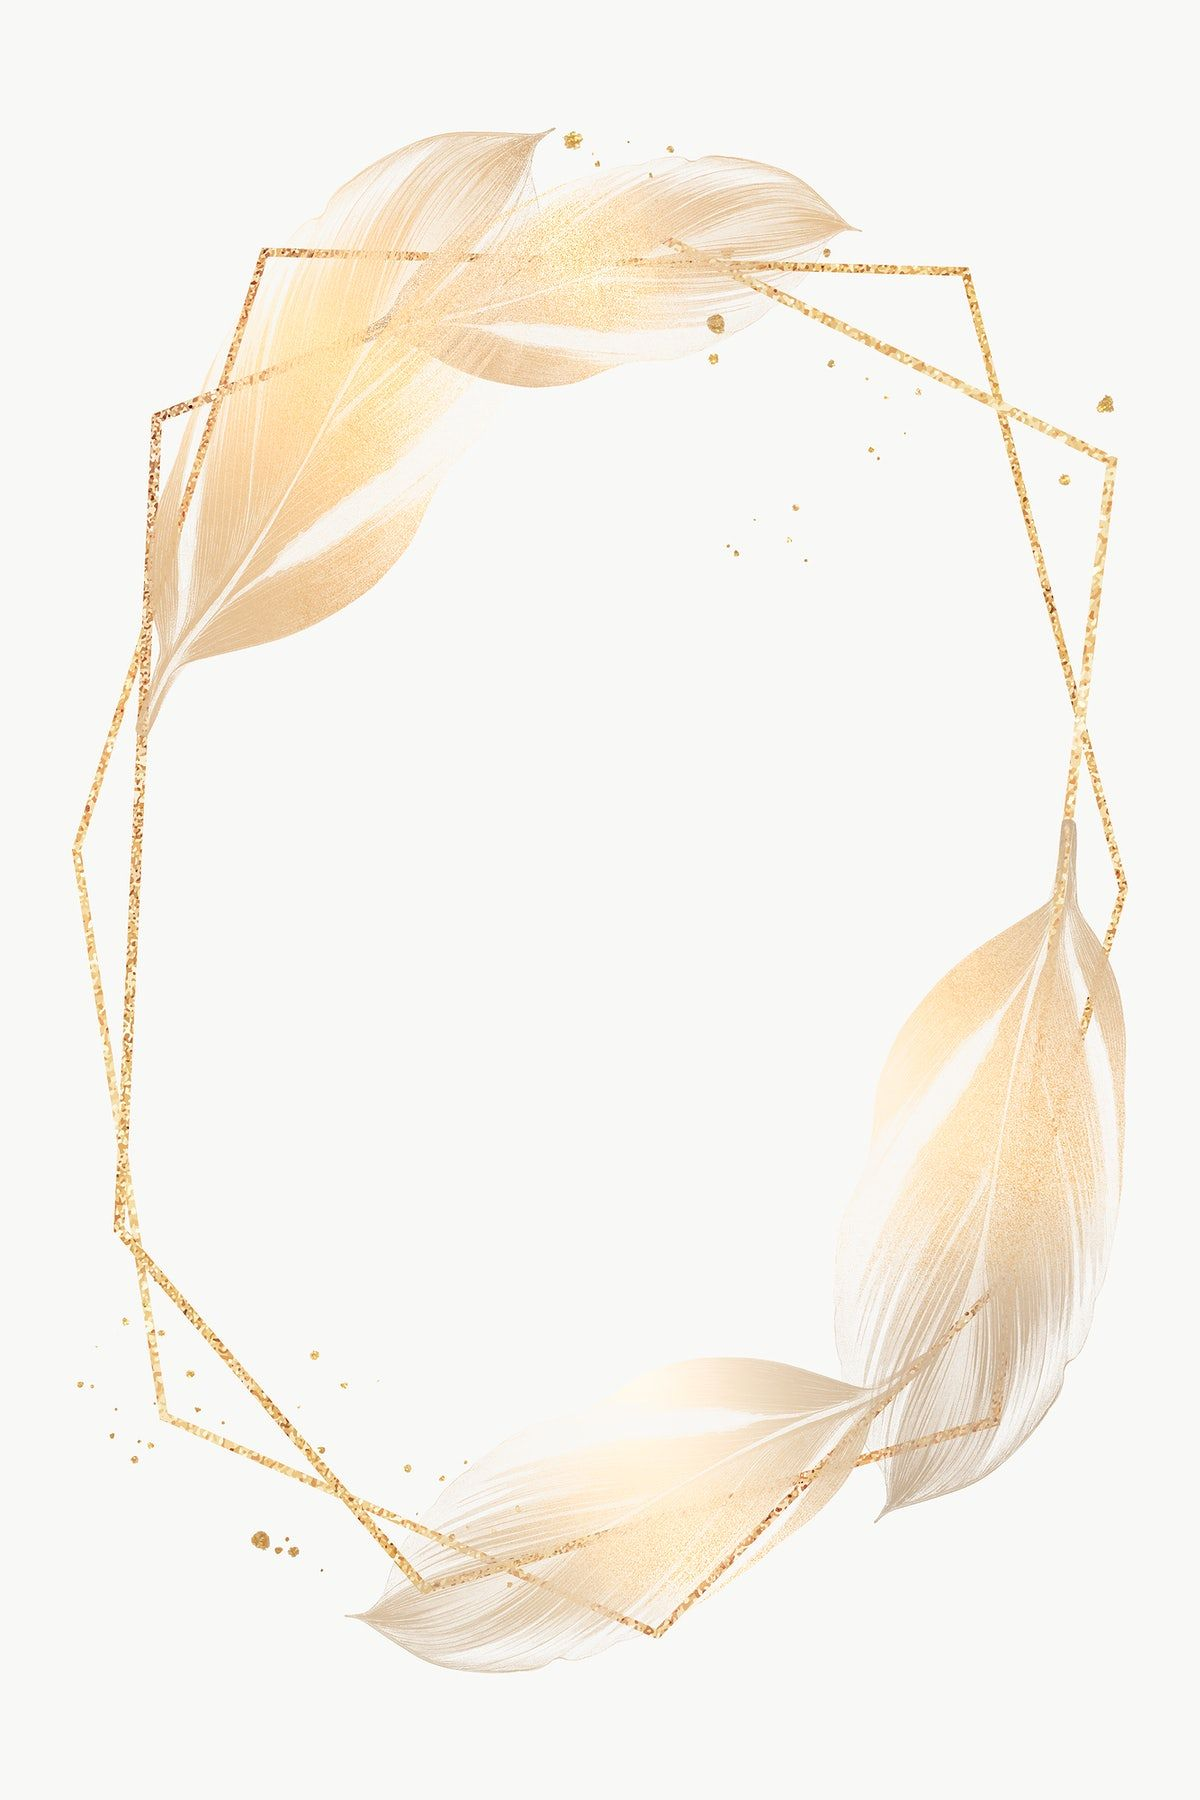 Golden Dracaena Recina On A Hexagon Shaped Frame Design Element Free Image By Rawpixel Com N Flower Graphic Design Flower Background Iphone Flower Graphic